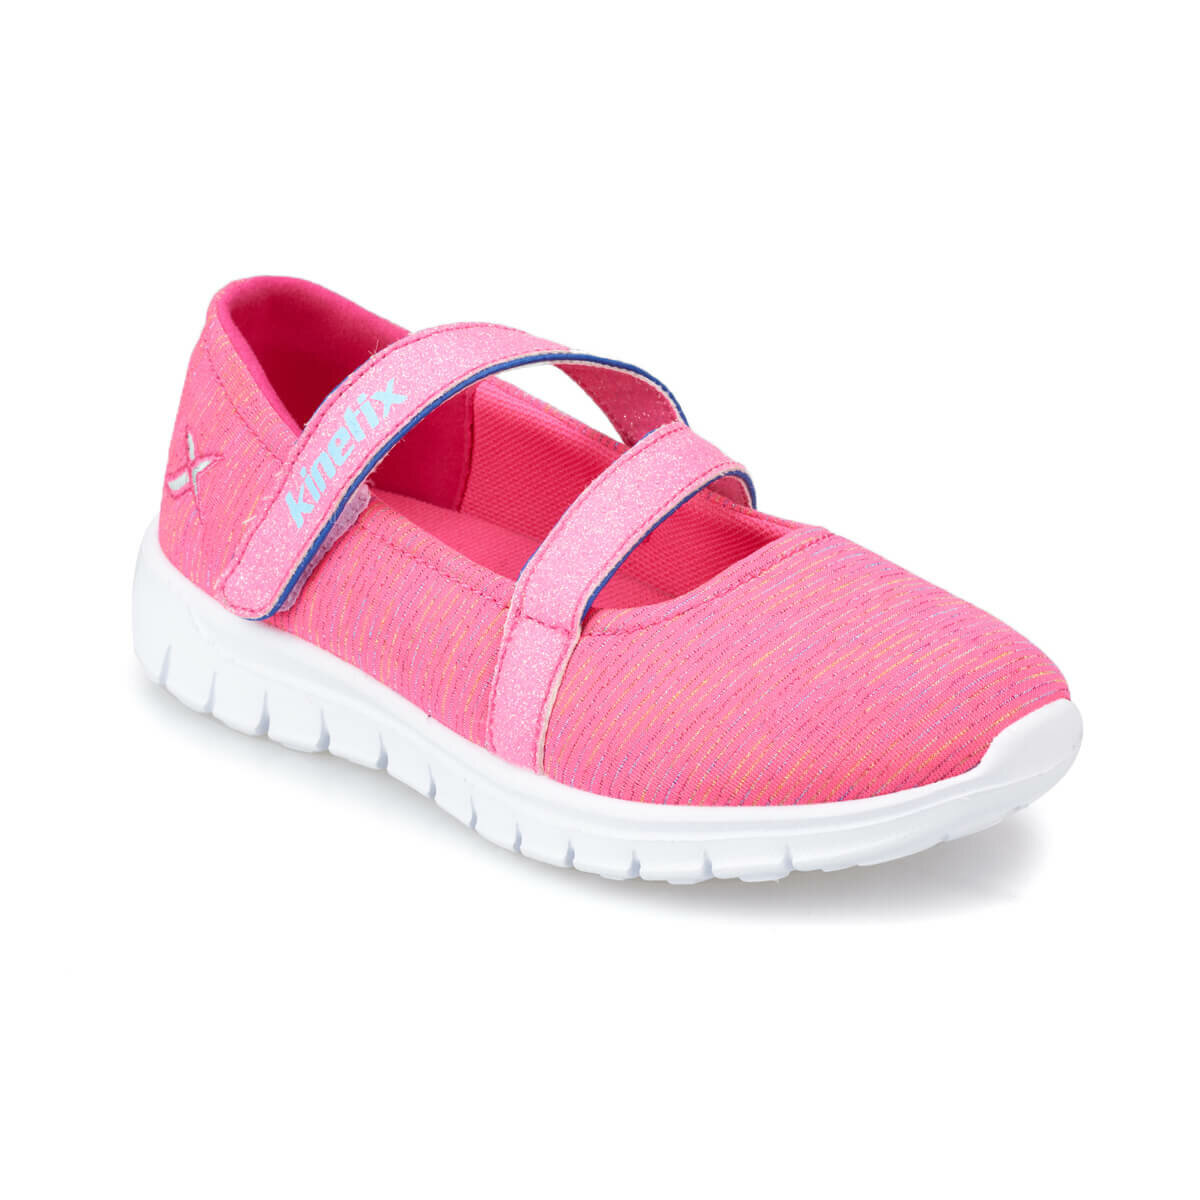 FLO LESTER Neon Pink Female Child Walking Shoes KINETIX